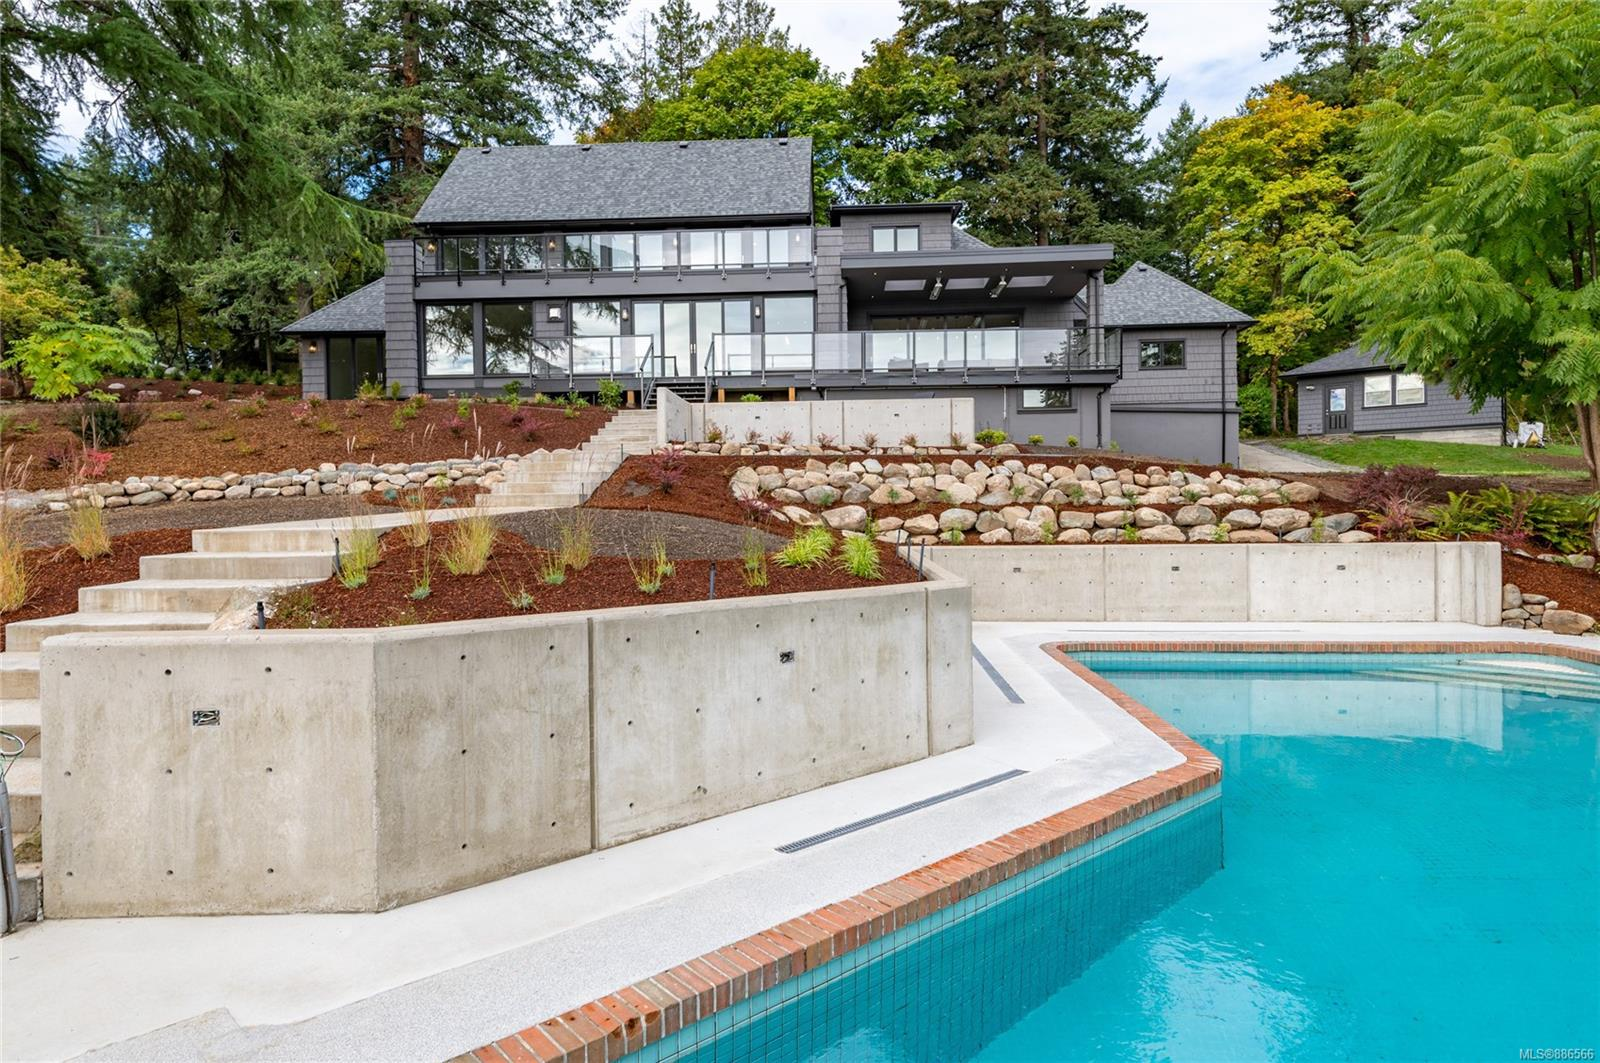 """This spectacular 2.85 acre estate is located just 20 minutes from downtown Victoria. Featuring a renovated guest cottage, tennis court and outdoor pool, the property offers stunning views of the ocean and Mt. Baker. A rare opportunity for a modern country lifestyle close to the city! A stunning renovation of the property has just been completed. Virtually a  brand new home offering 4800 square feet of open plan family living that allows for views from all principle rooms.The stylish renovation has created a """"modern farmhouse"""" vibe while preserving and polishing the charming 1941 front facade. Modern rear facade embraces ocean views with large windows & numerous outdoor entertaining areas. The chef's kitchen has a 12-foot island, stone countertops, deluxe appliances & a huge foldaway glass door that leads to a covered and heated deck.Main floor media room, upstairs office and flex space,Basement suite & garage parking for 4 cars. Beautifully landscaped for easy outdoor living !"""